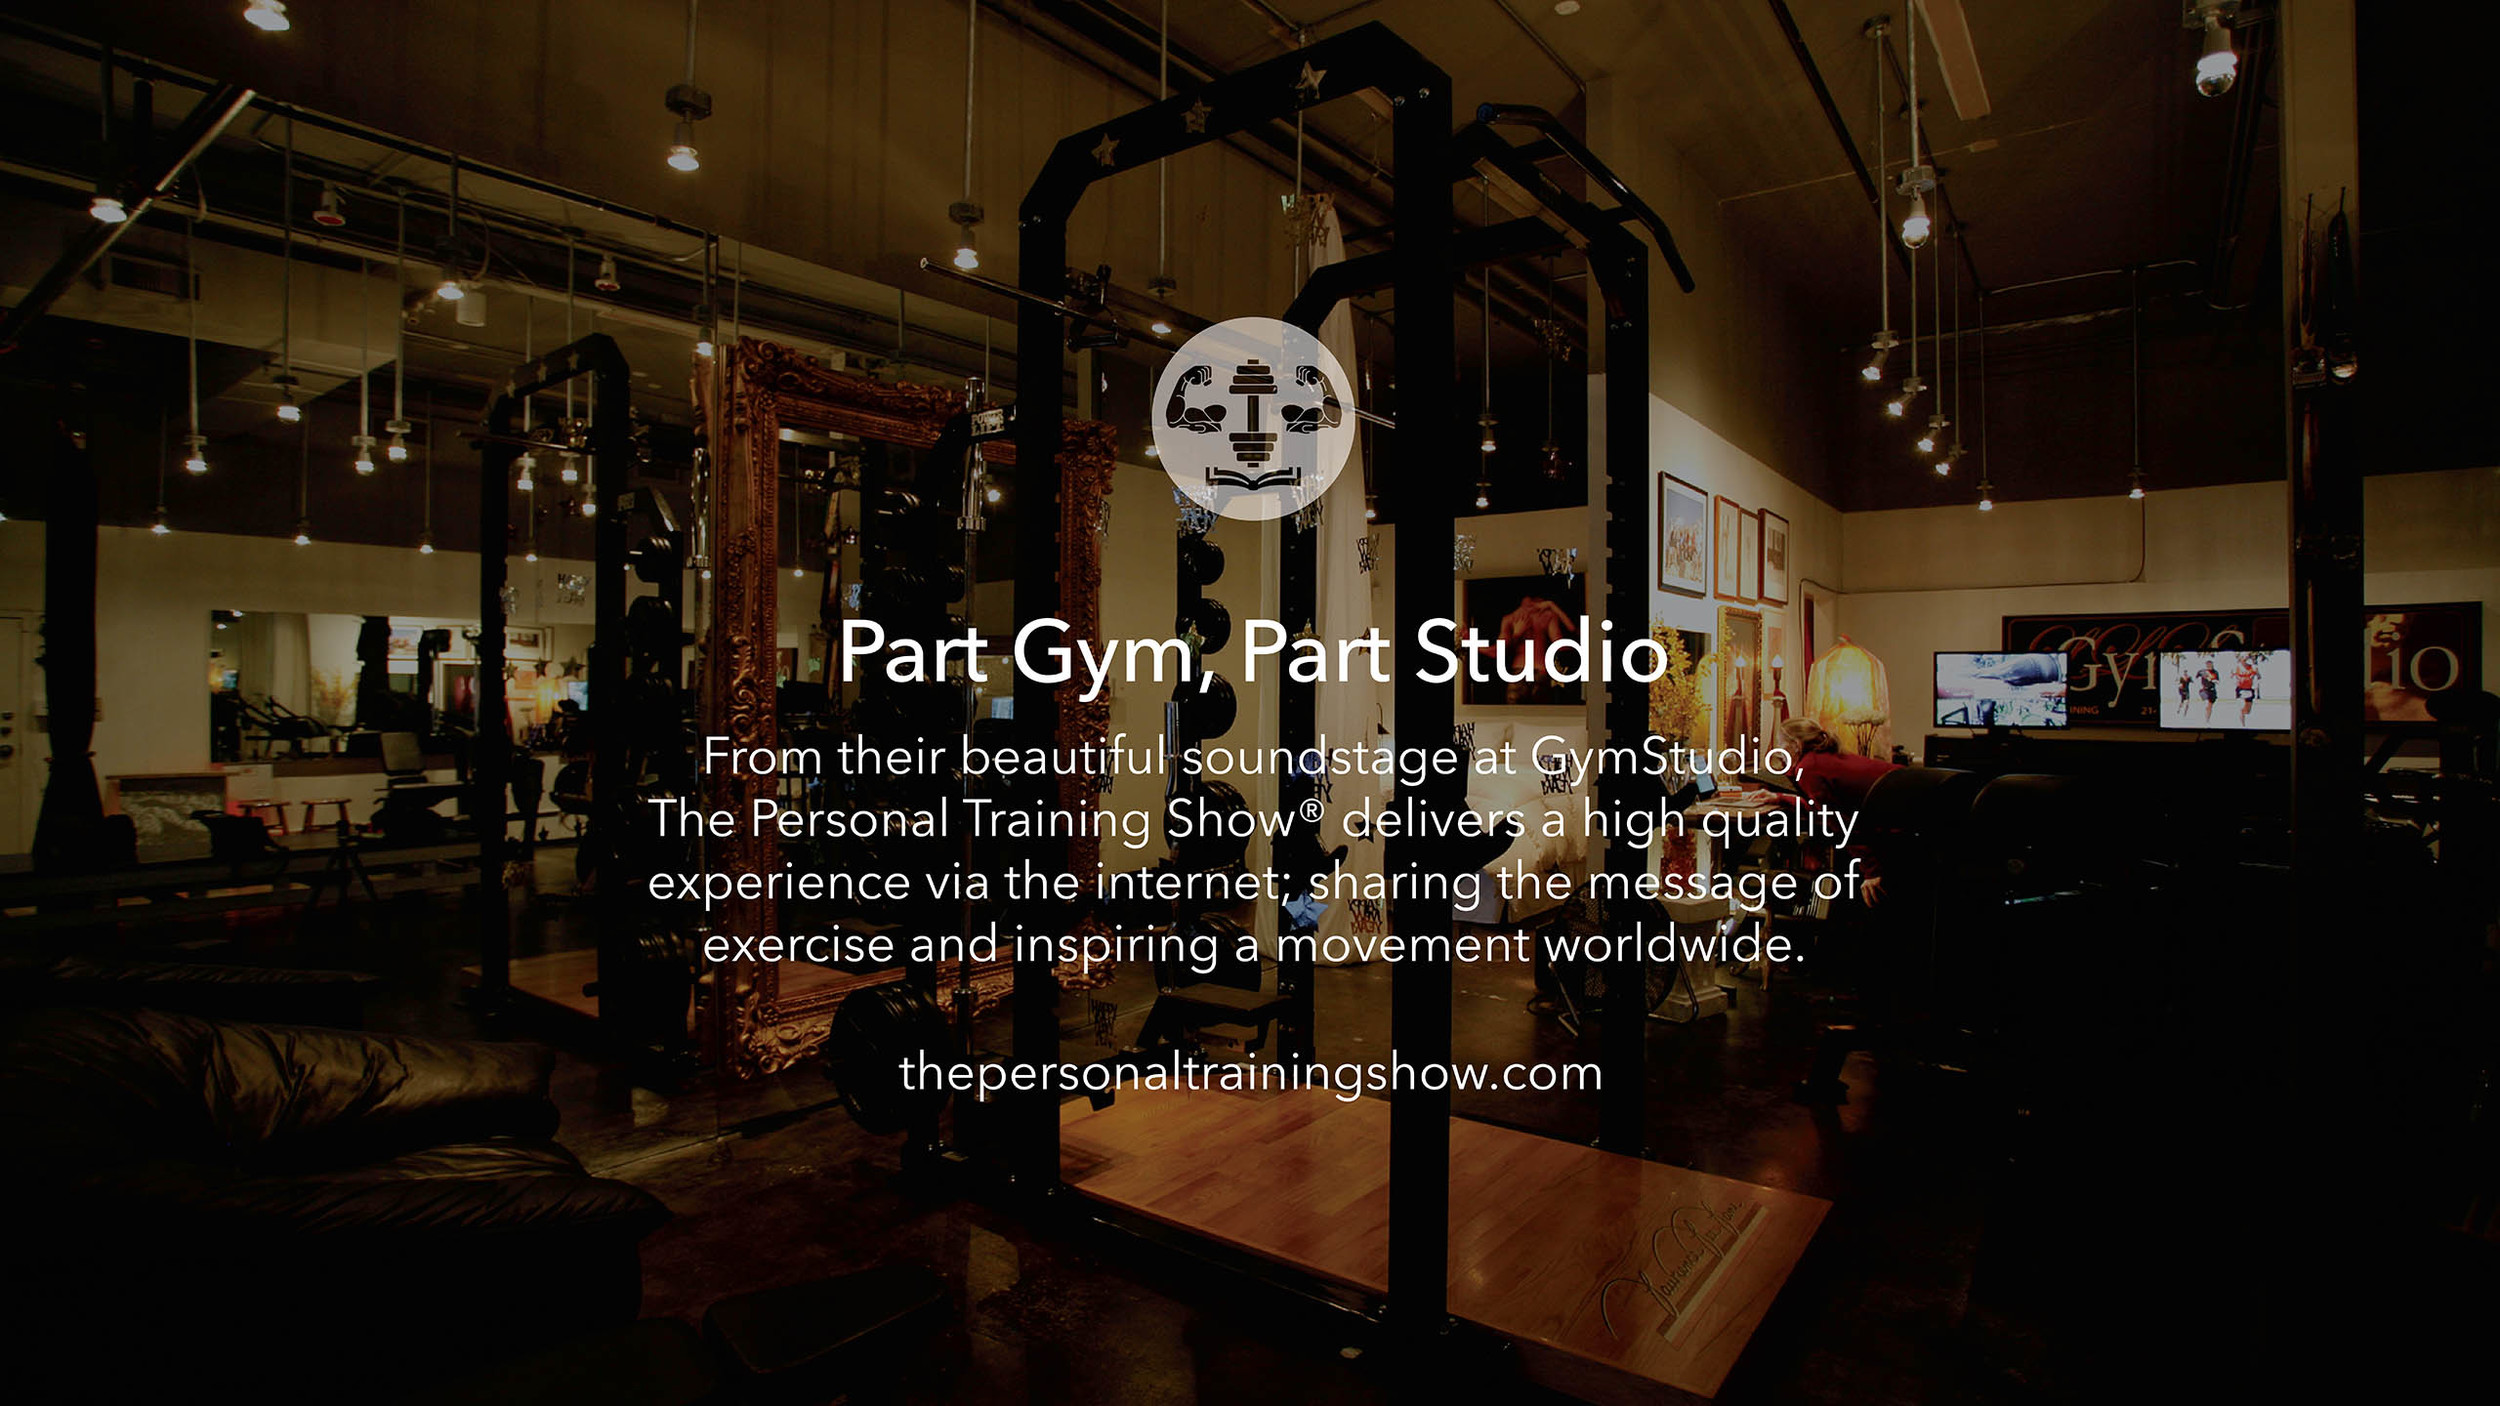 Part Gym, Part Studio